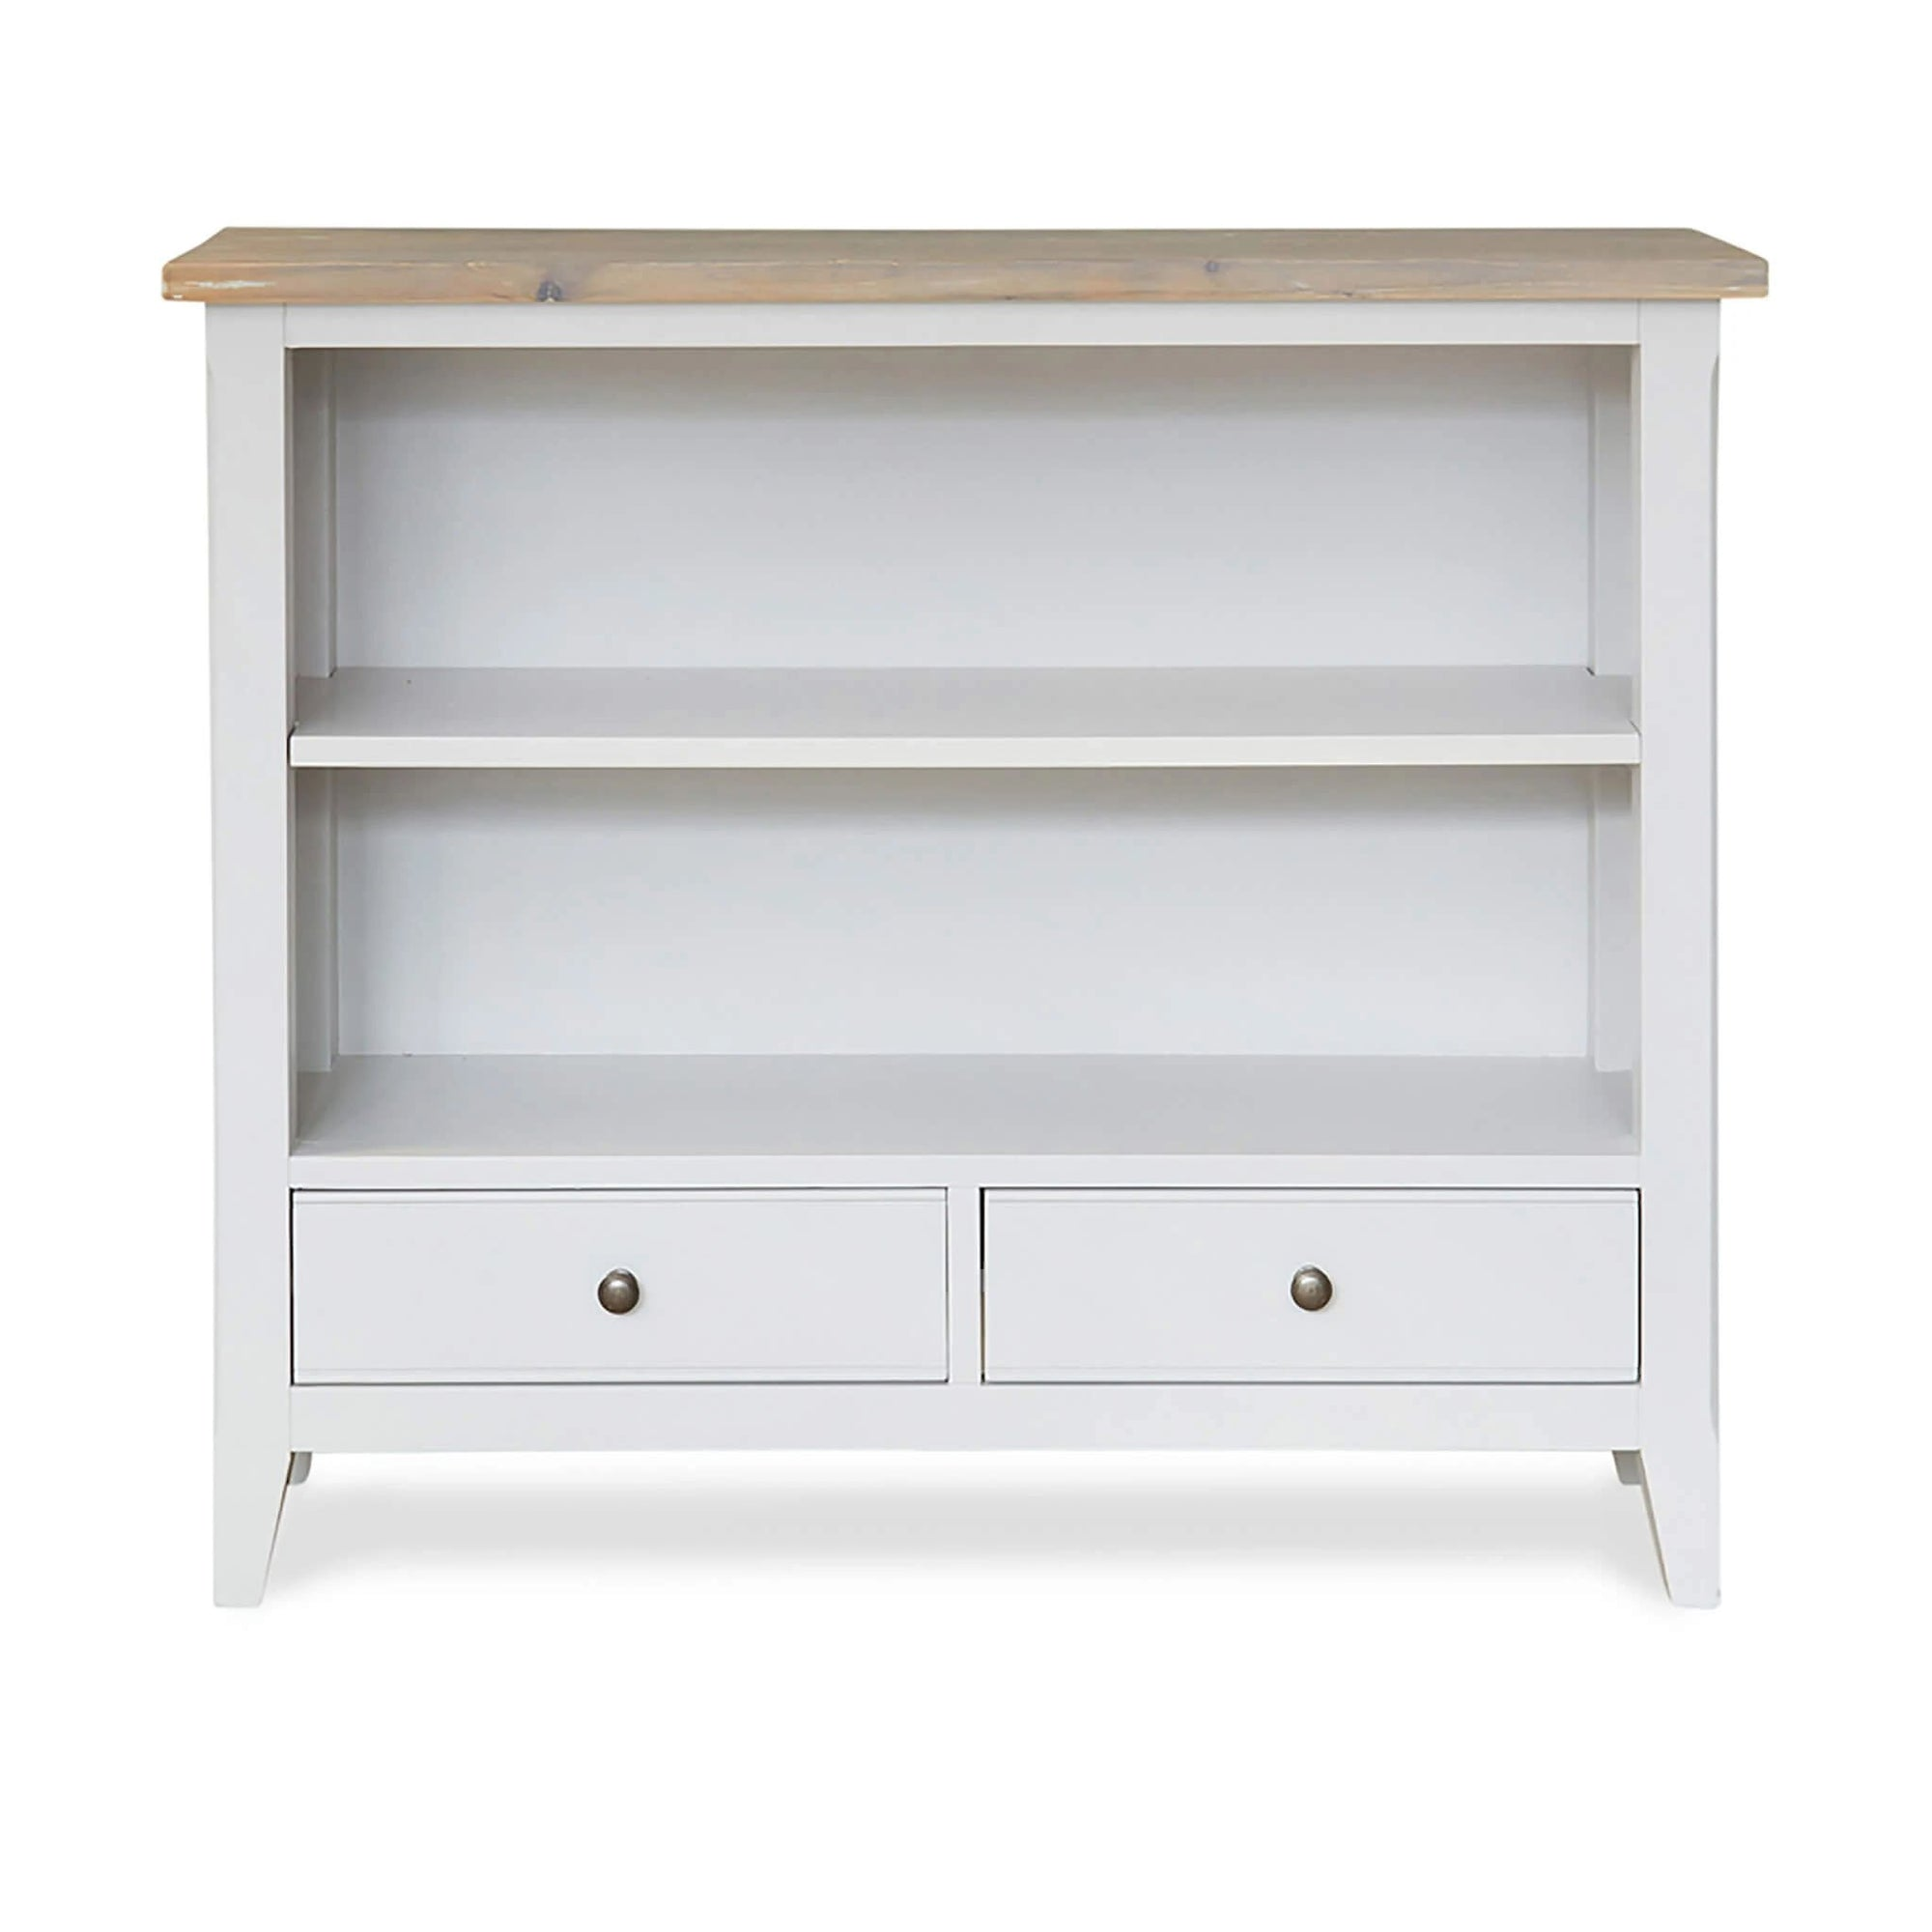 Signature Grey Low Bookcase by Roseland Furniture